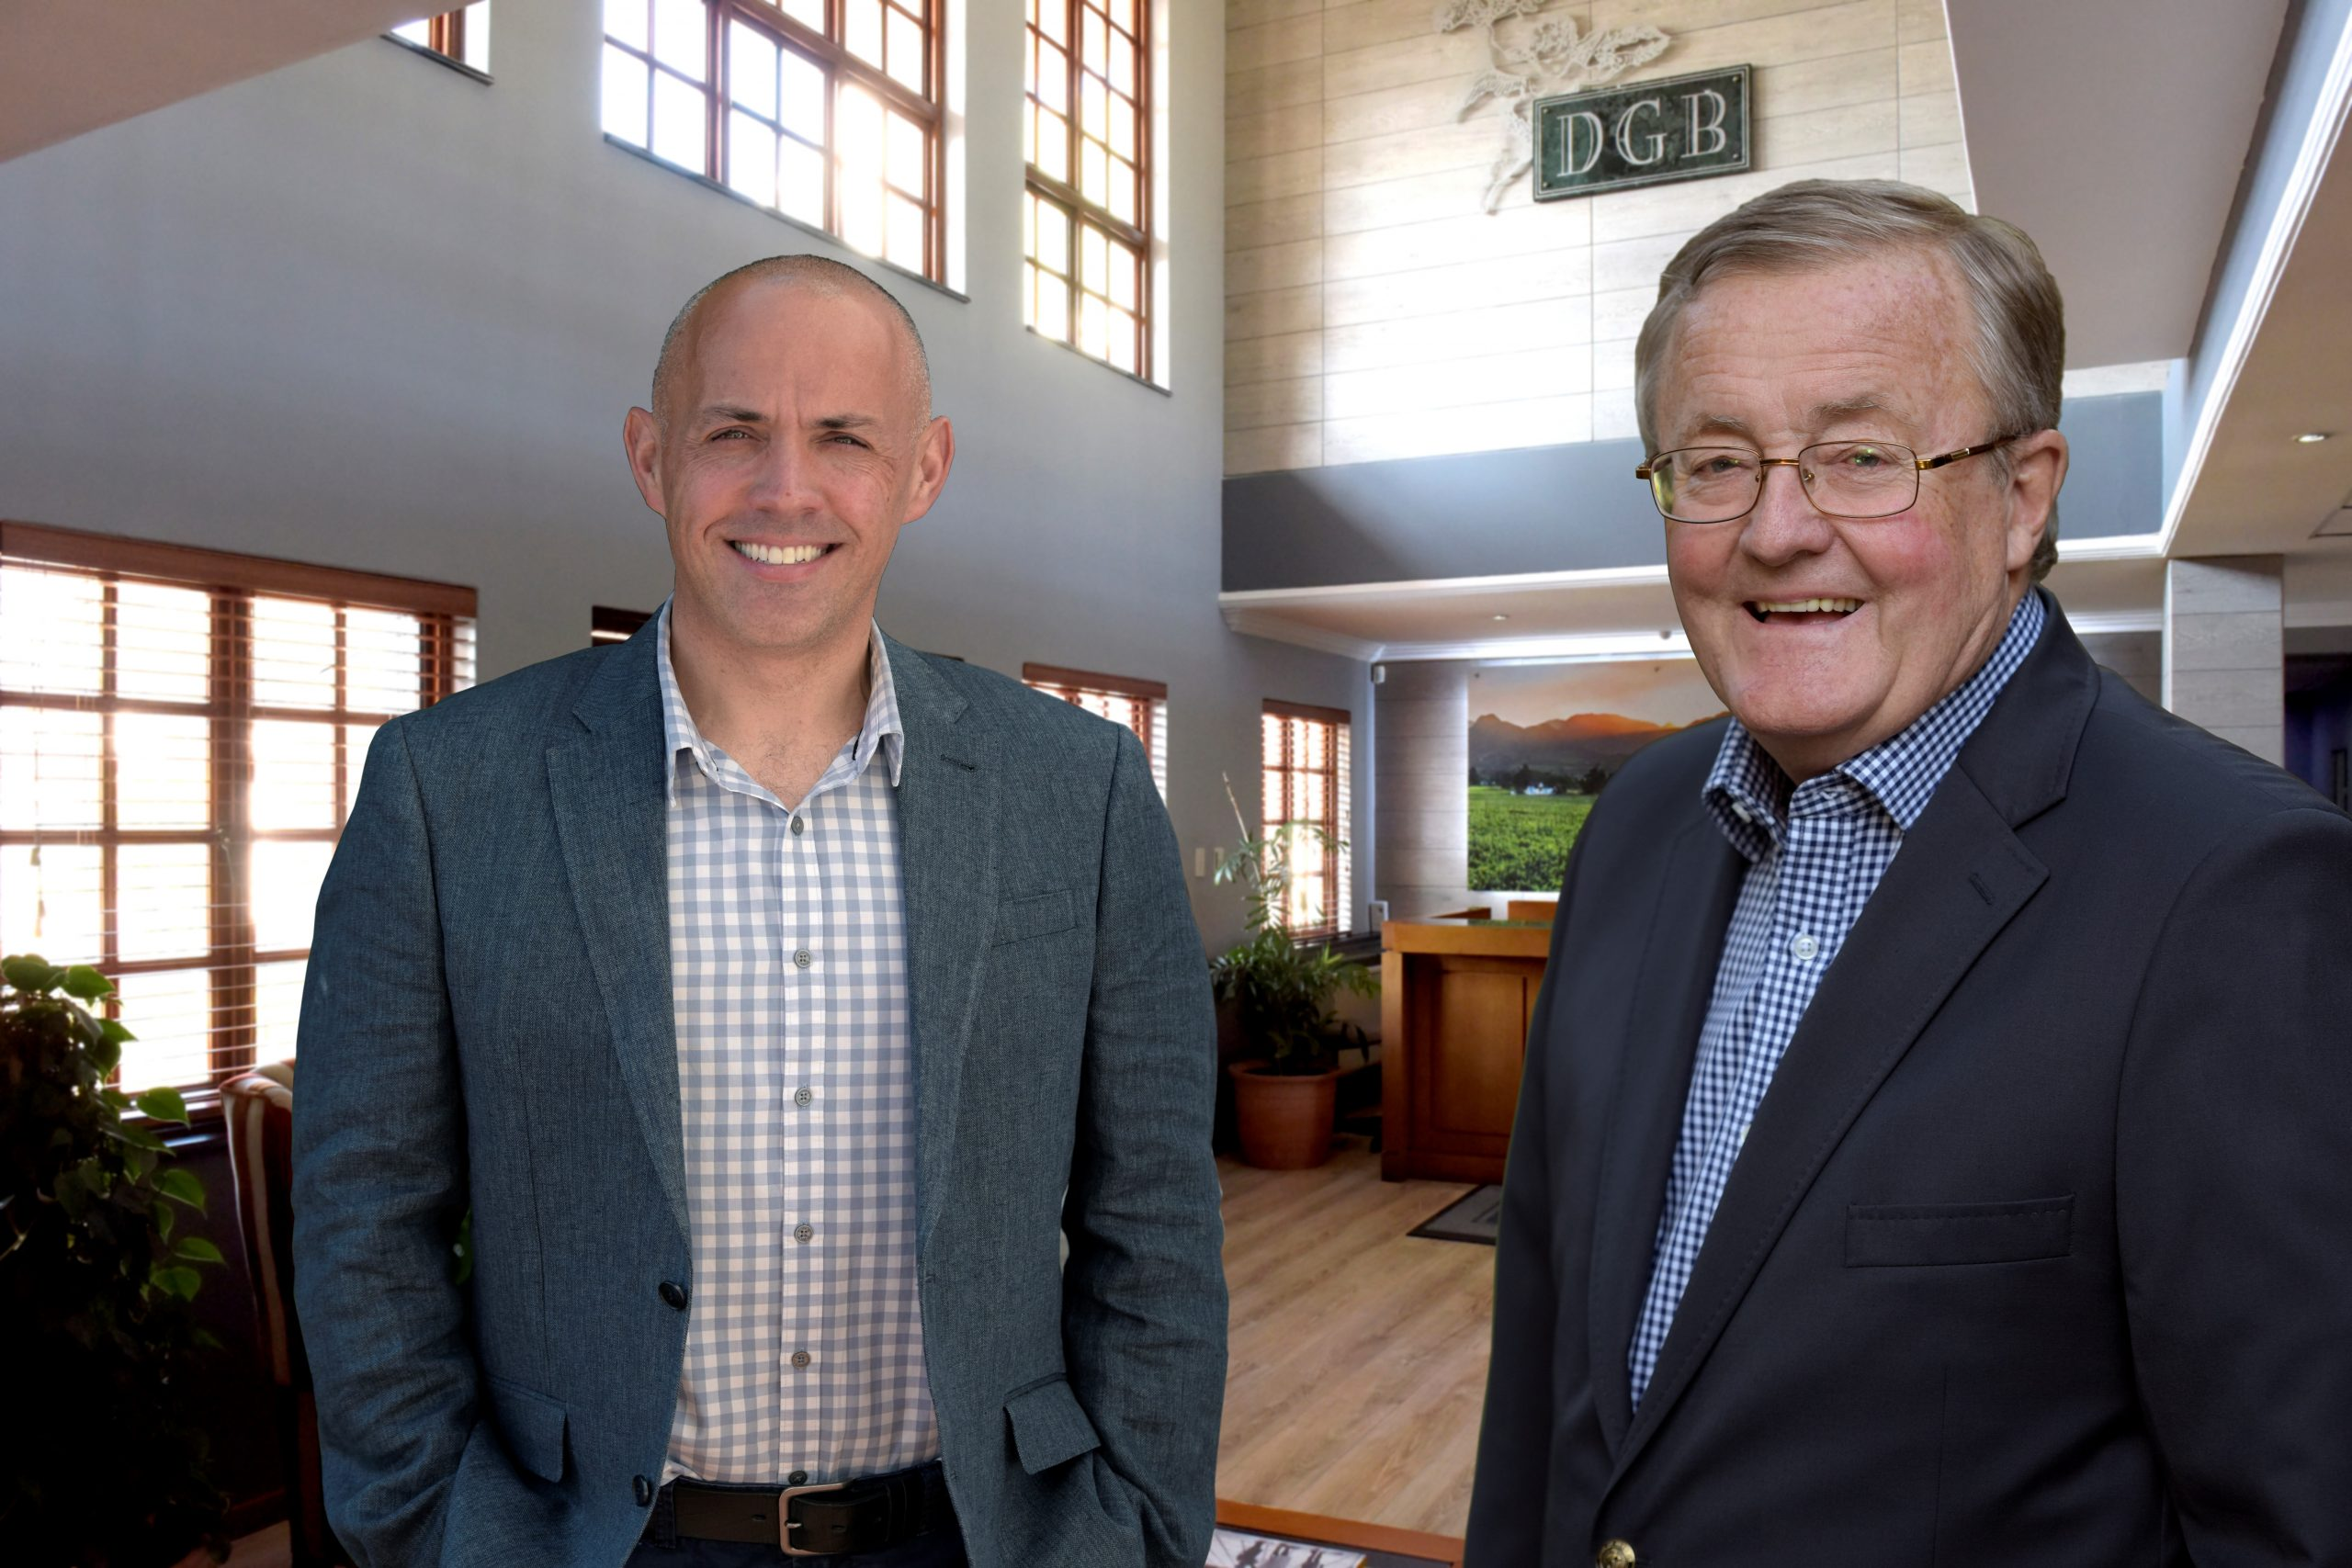 Capitalworks acquires Brait's majority shareholding in leading SA Liquor player DGB photo